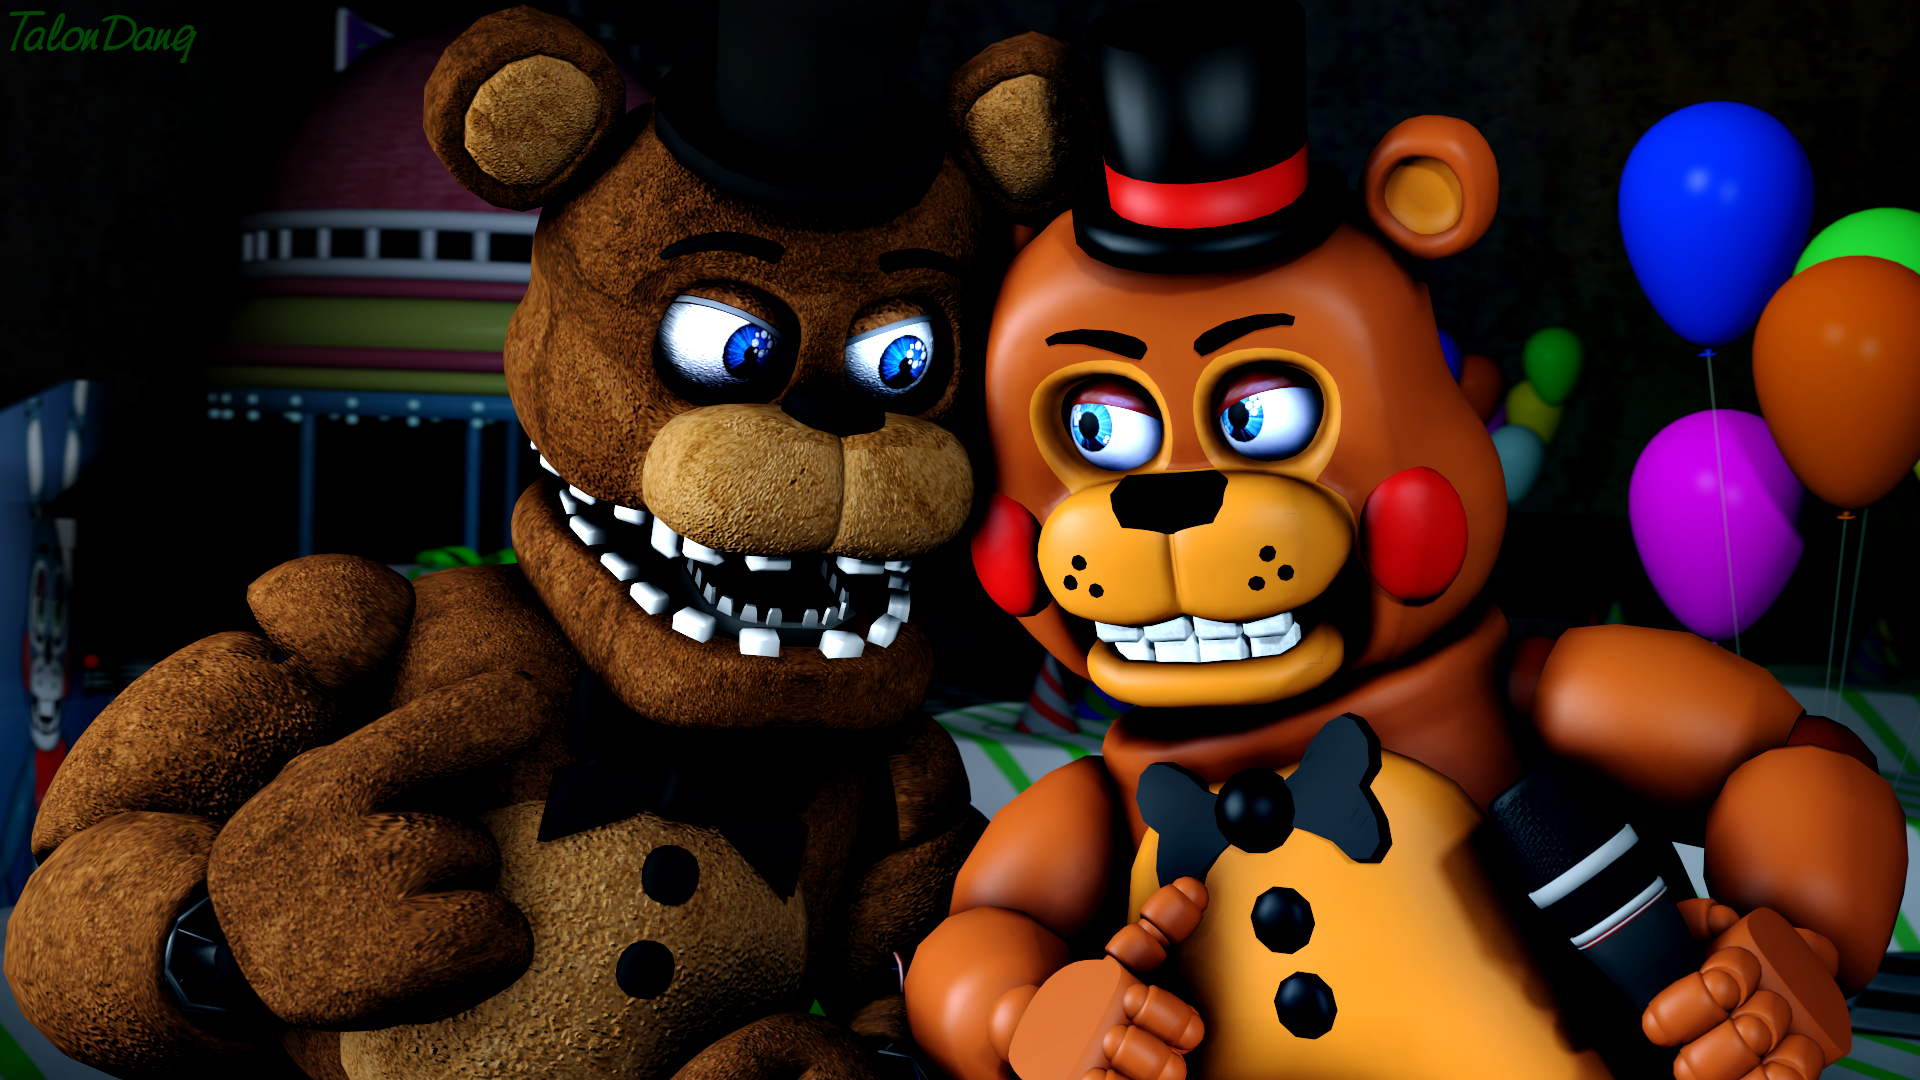 Old Freddy Toys : The stage is mine freddy and toy by talondang on